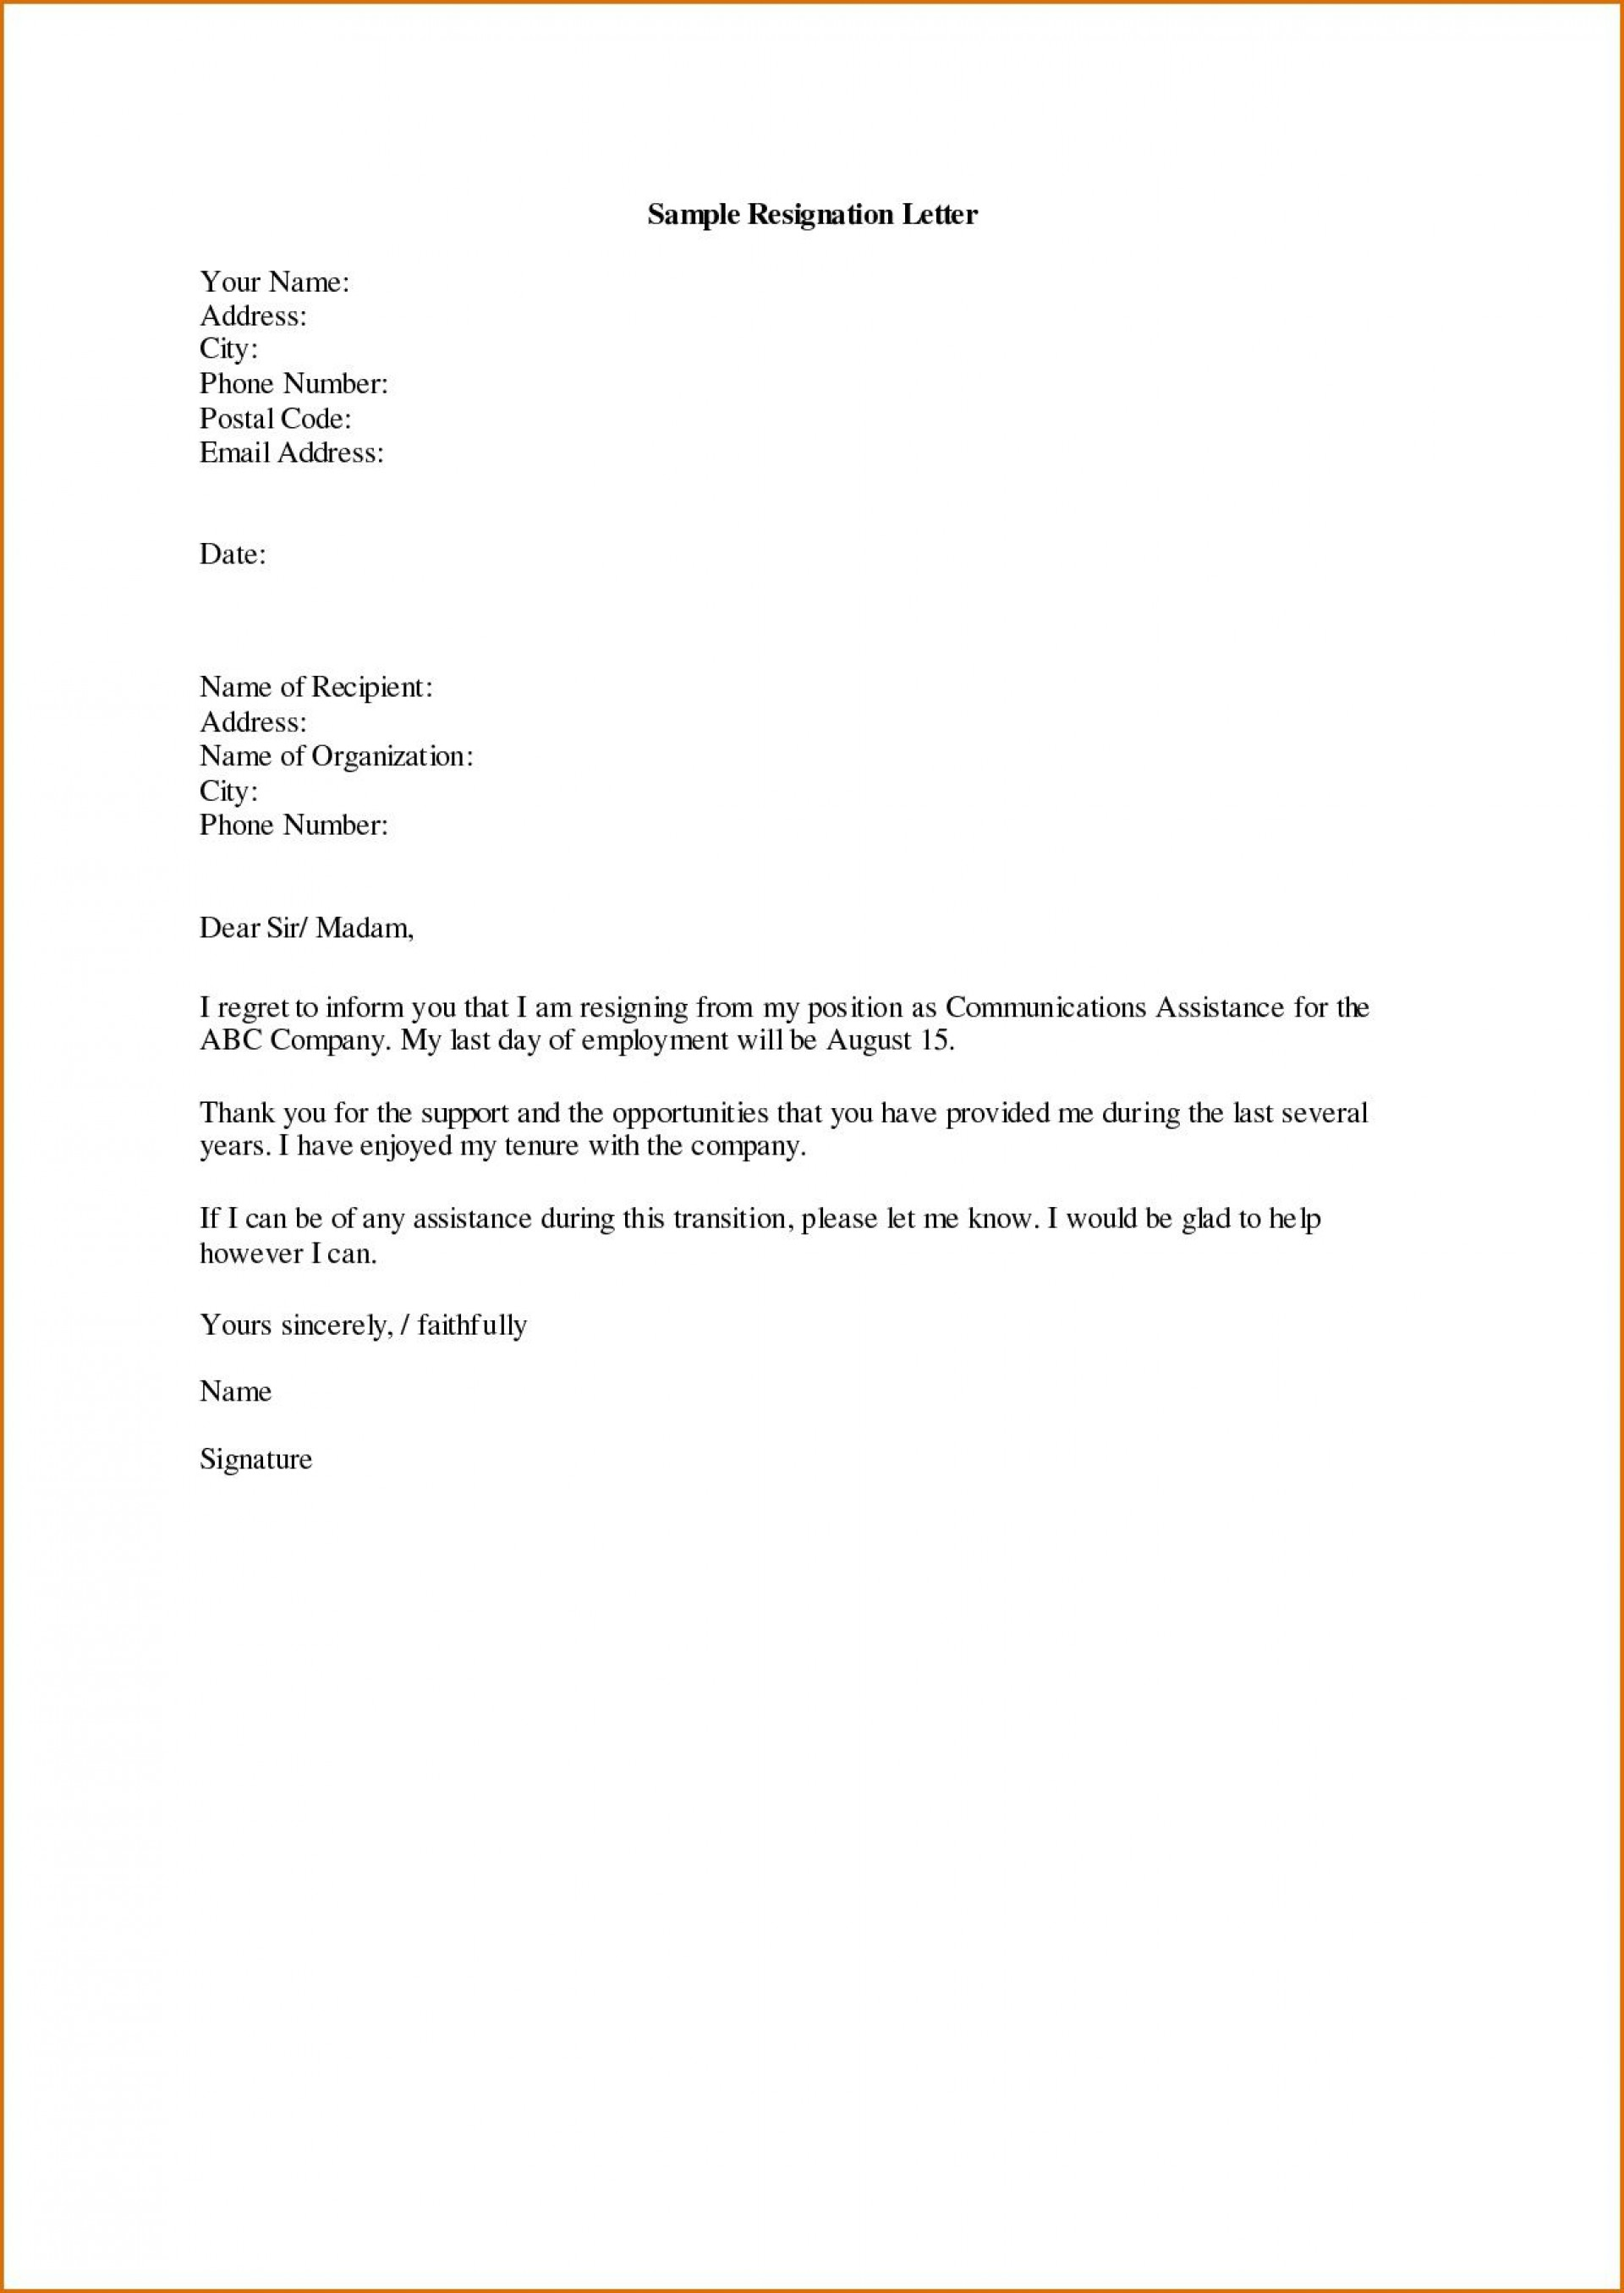 004 Marvelou Resignation Letter Template Word Highest Clarity  Malaysia Uk1920